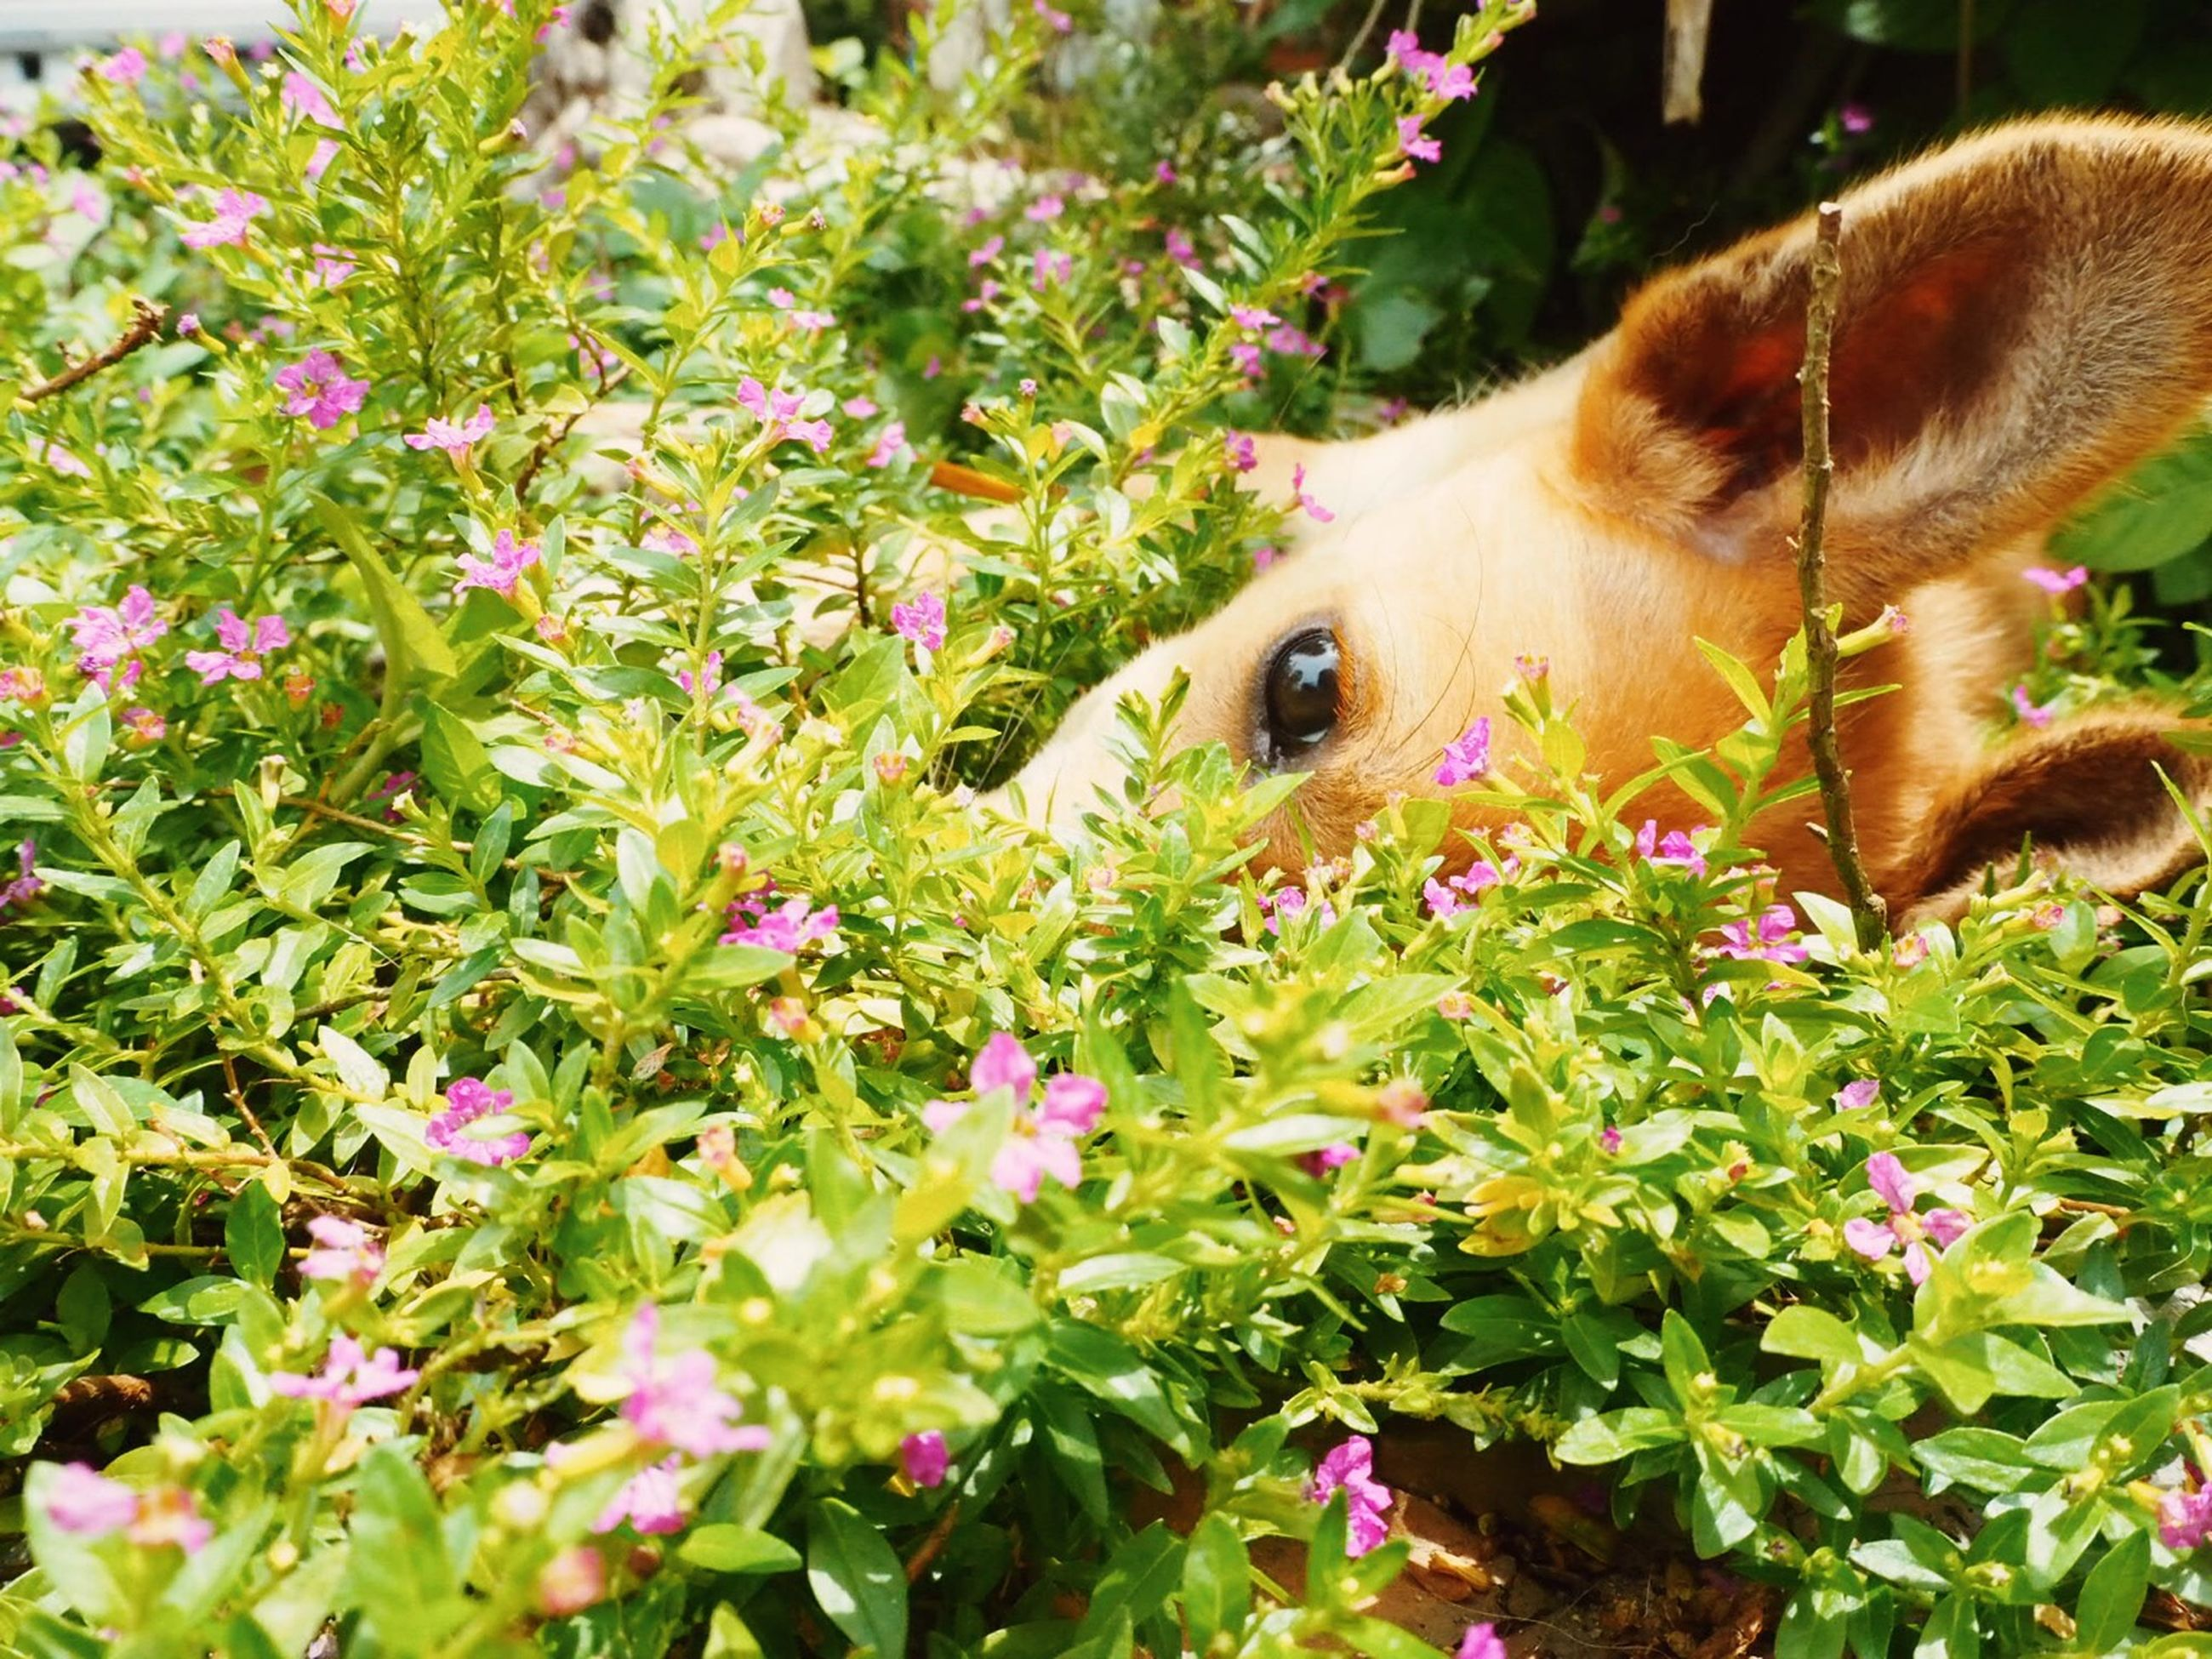 animal themes, one animal, domestic animals, mammal, flower, dog, pets, plant, growth, field, nature, close-up, pink color, no people, day, wildlife, two animals, outdoors, animal head, grass